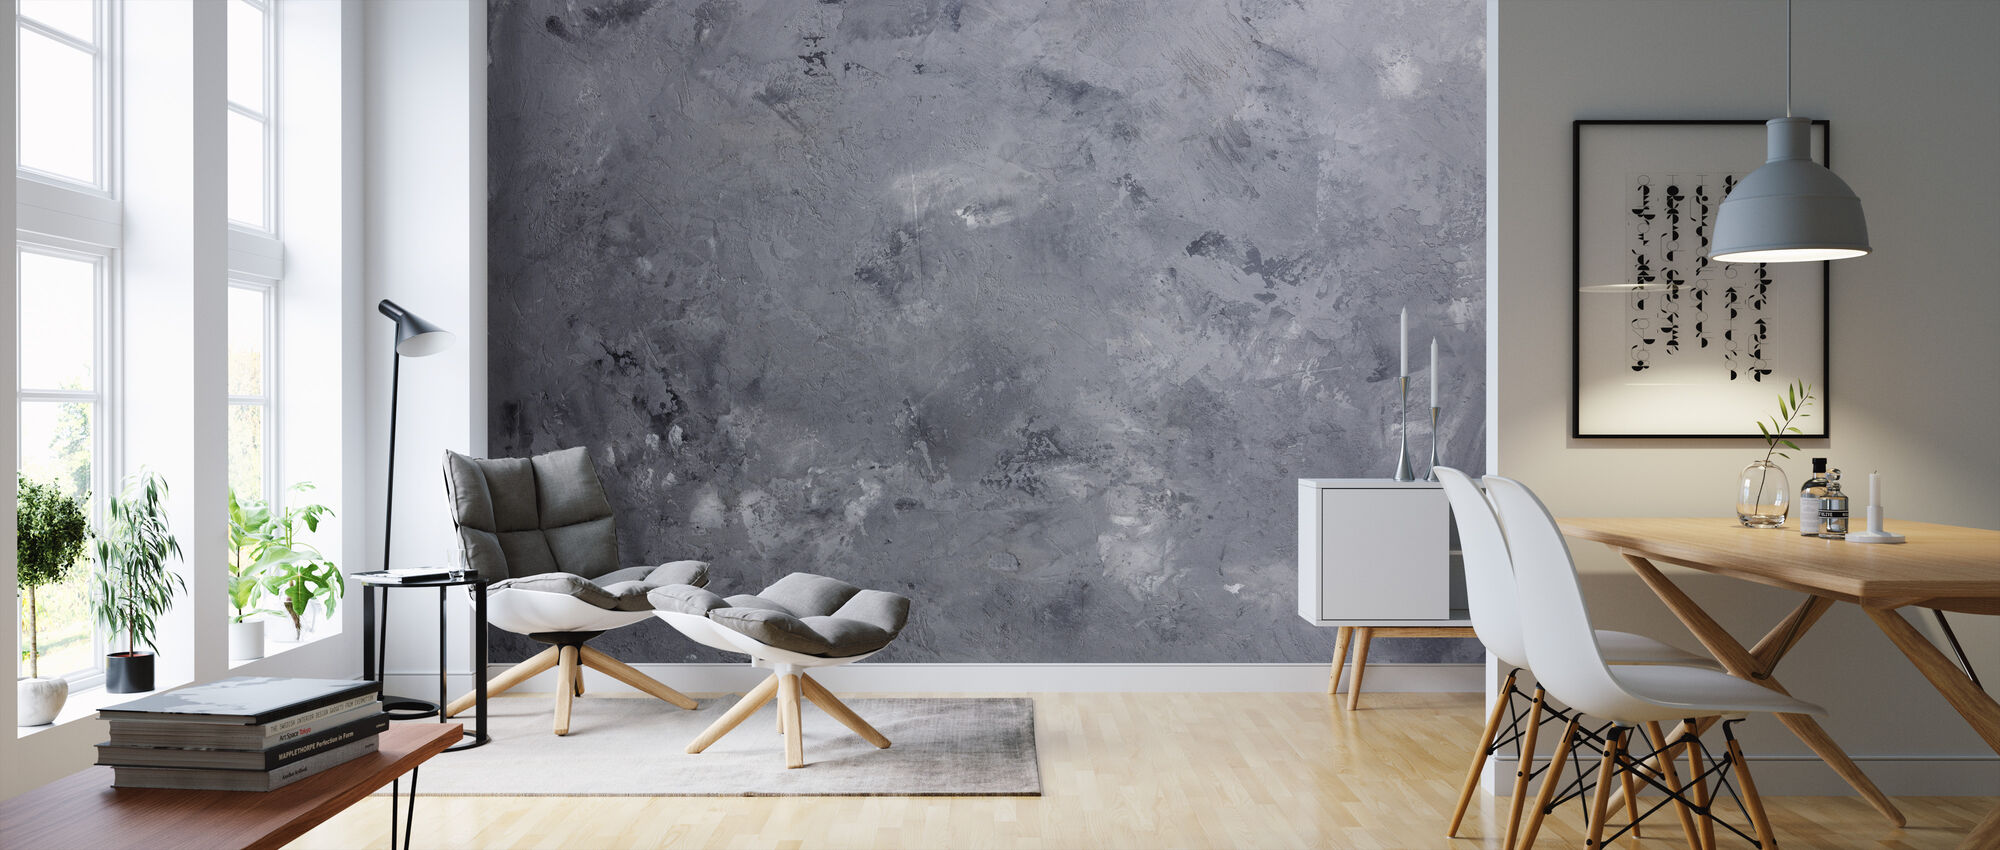 Gray Concrete Wall - Wallpaper - Living Room